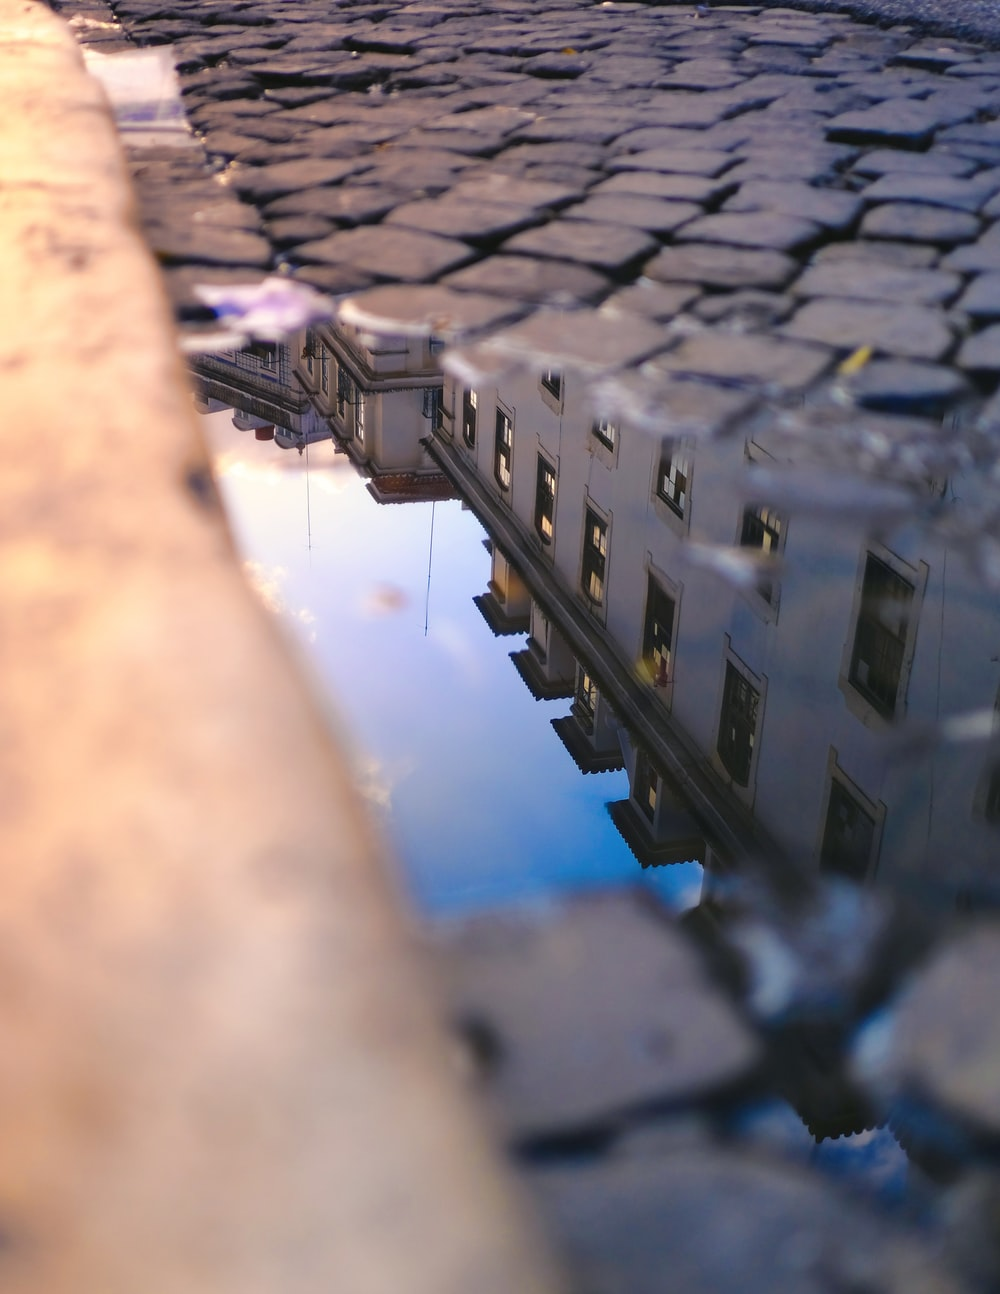 gray concrete building reflecting on road puddle